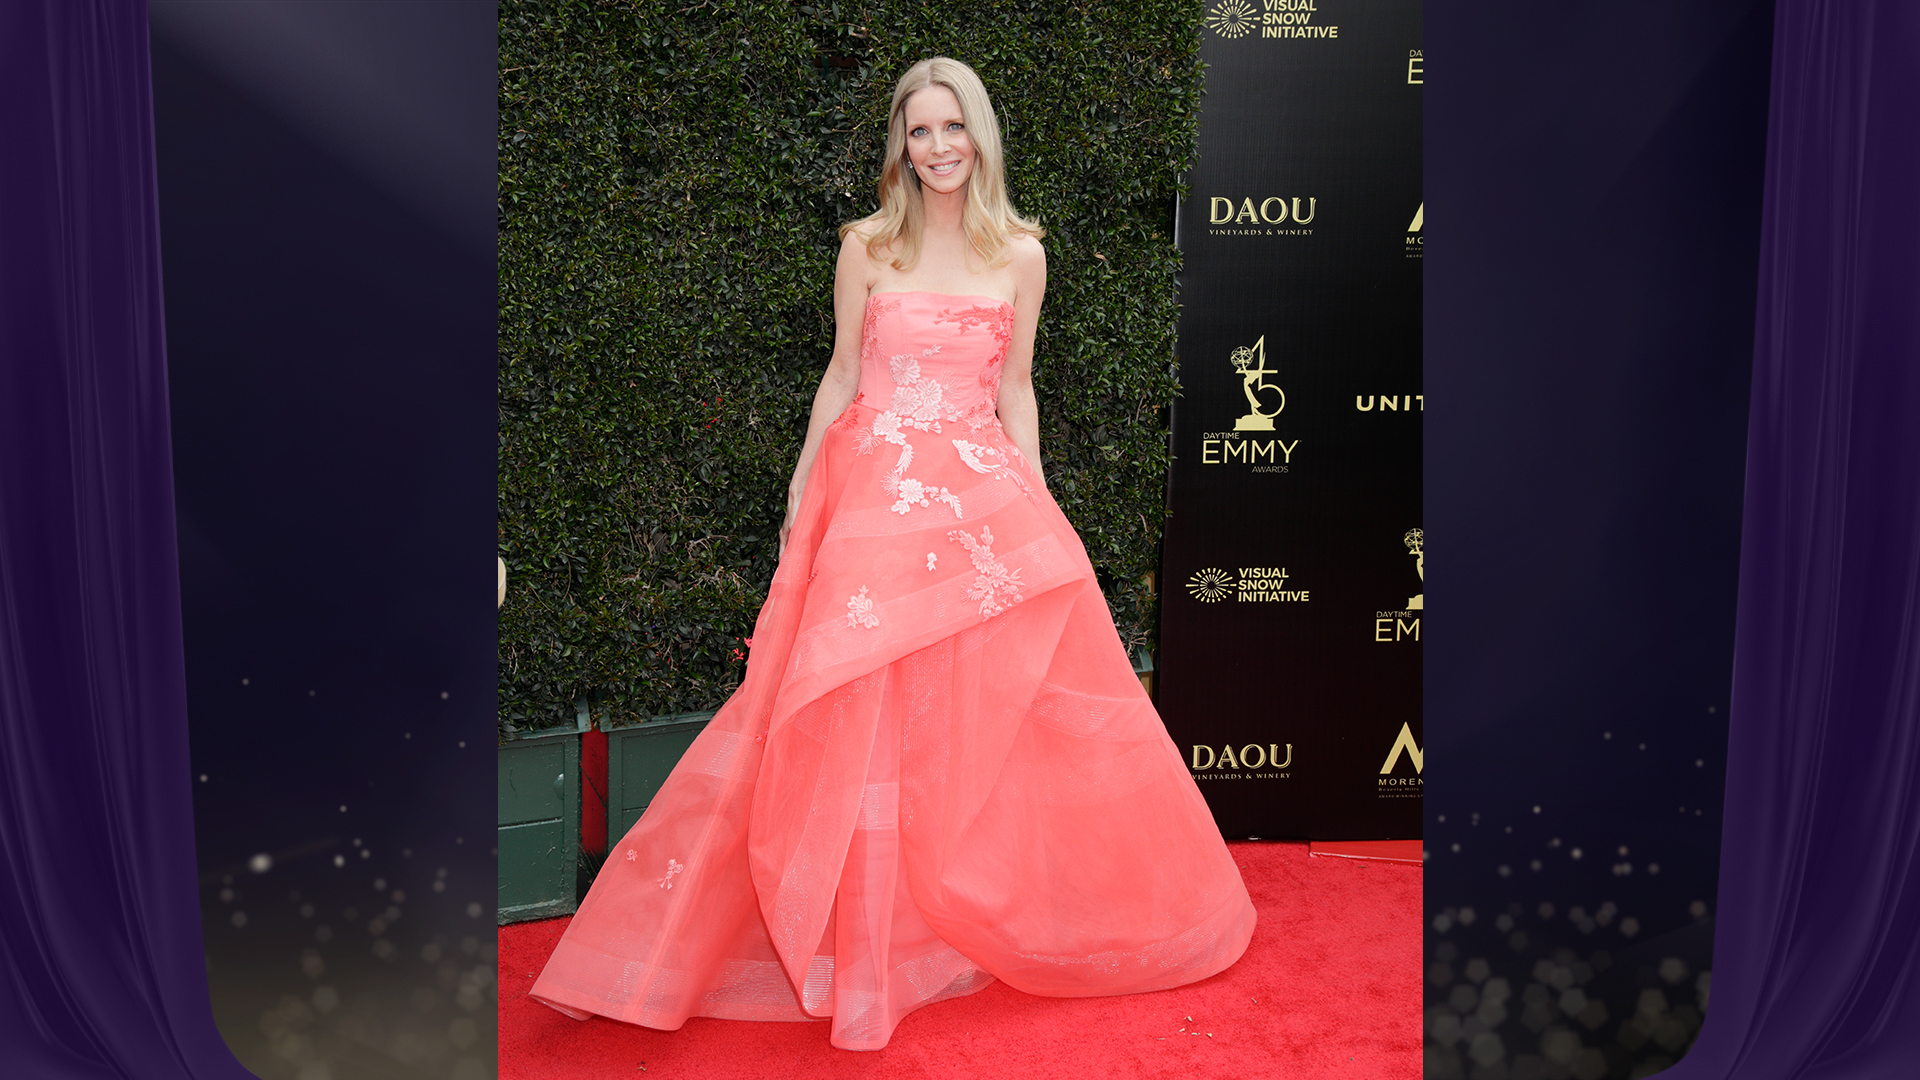 Lauralee Bell from The Young and the Restless glides down the red carpet in a pink strapless gown.